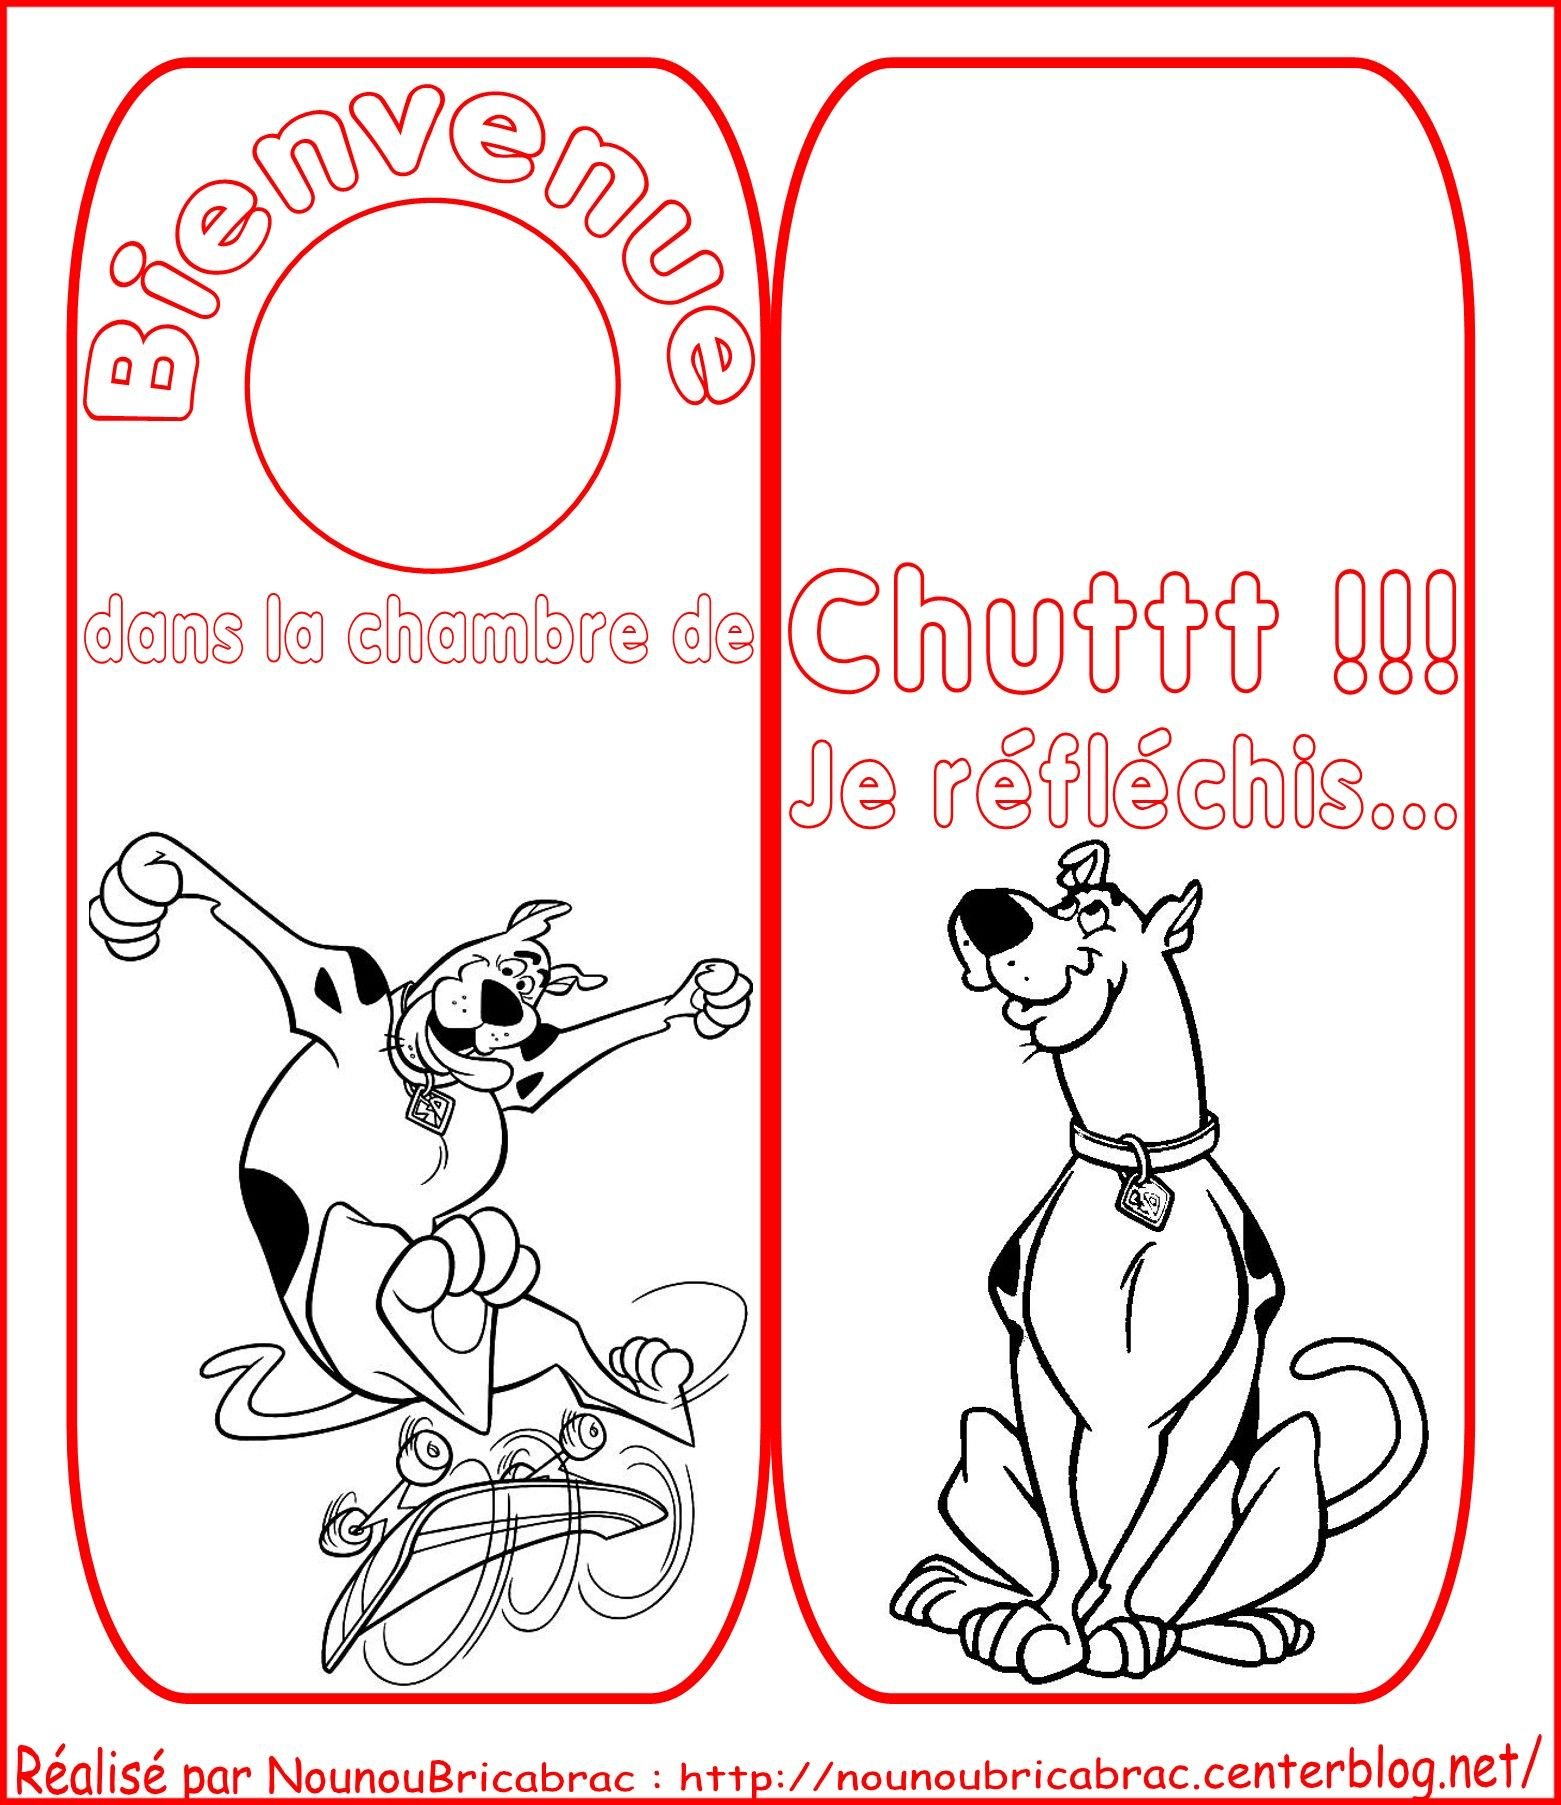 Signet de porte *Scooby doo* pour chambre de ...